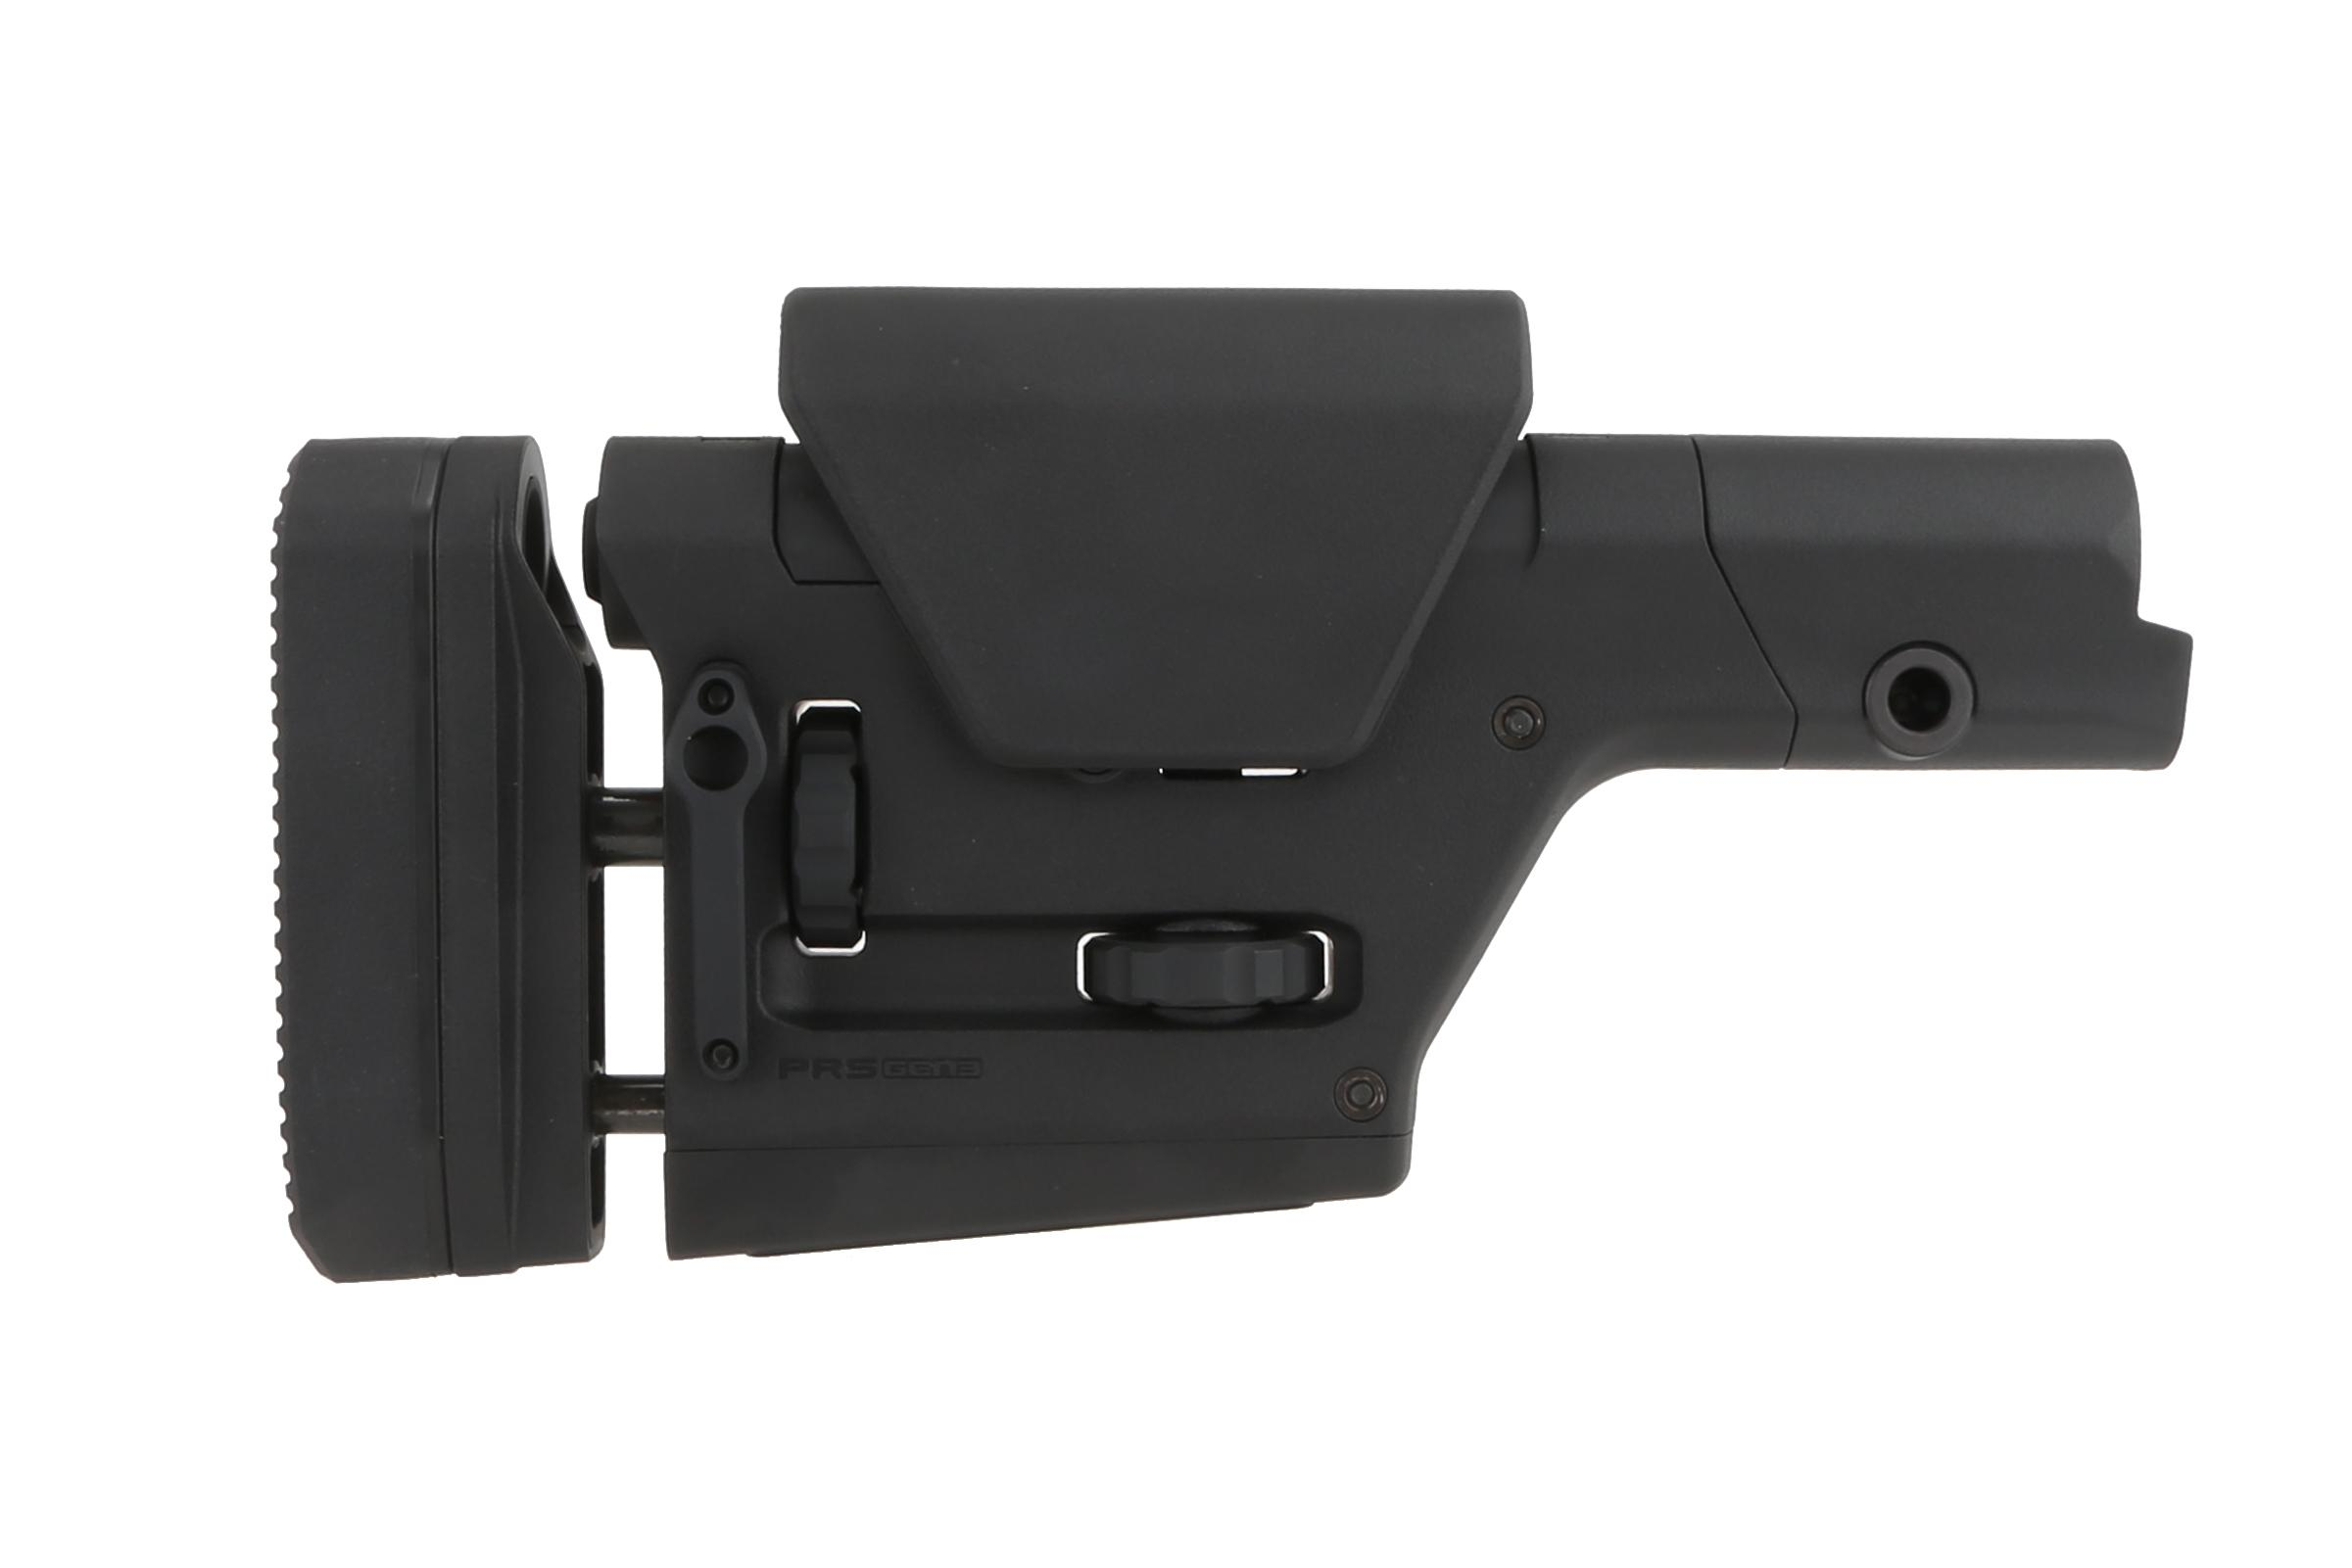 The Magpul PRS stock Gen 3 is optimized fro rifle length buffer tubes and can be used on AR15 or AR10 style rifles